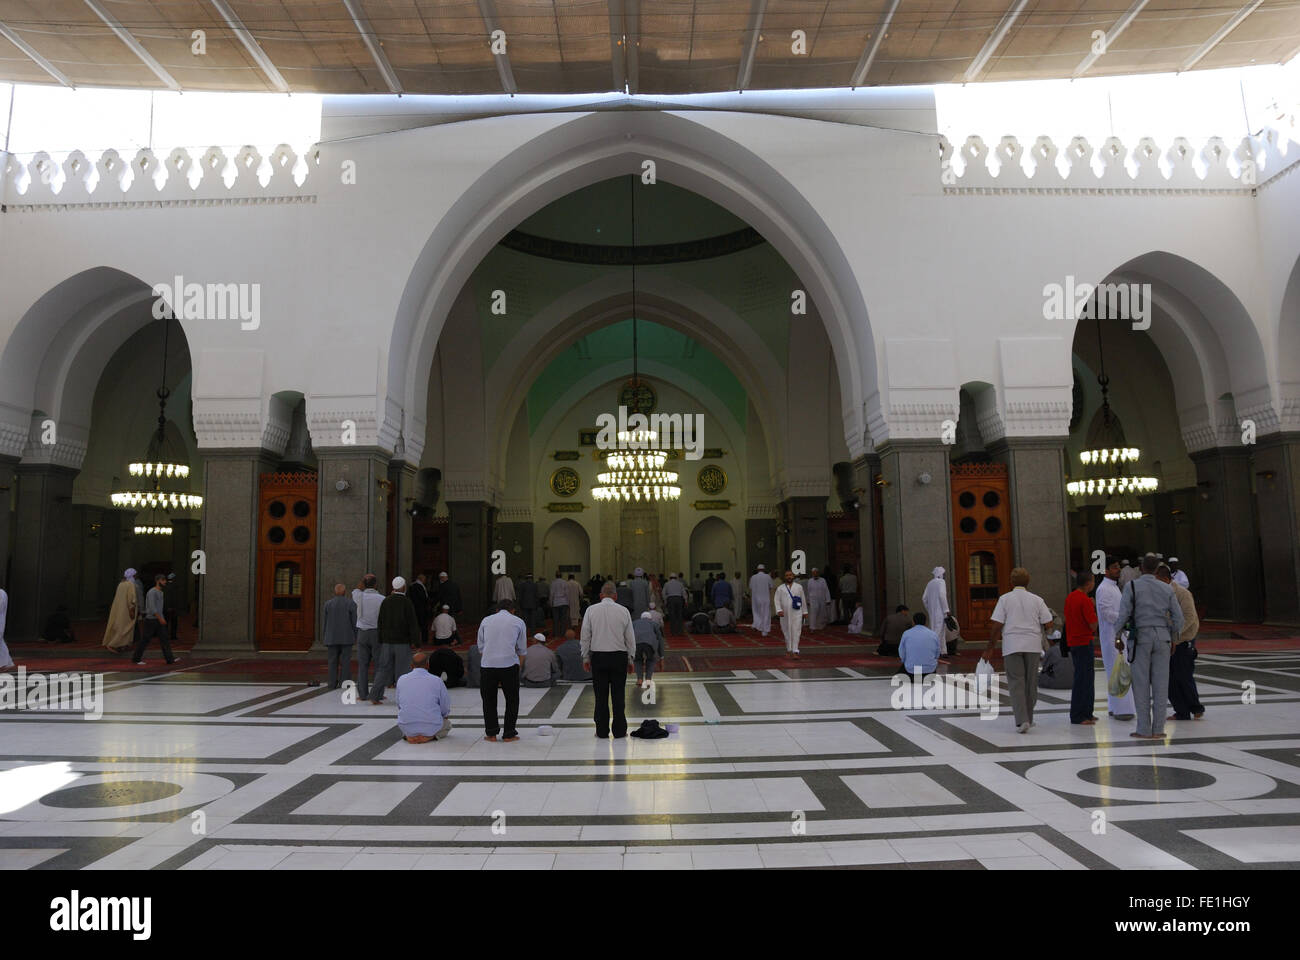 Worshipers at Masjid Quba, the very first Mosque that was built, Medina, Saudi Arabia - Stock Image